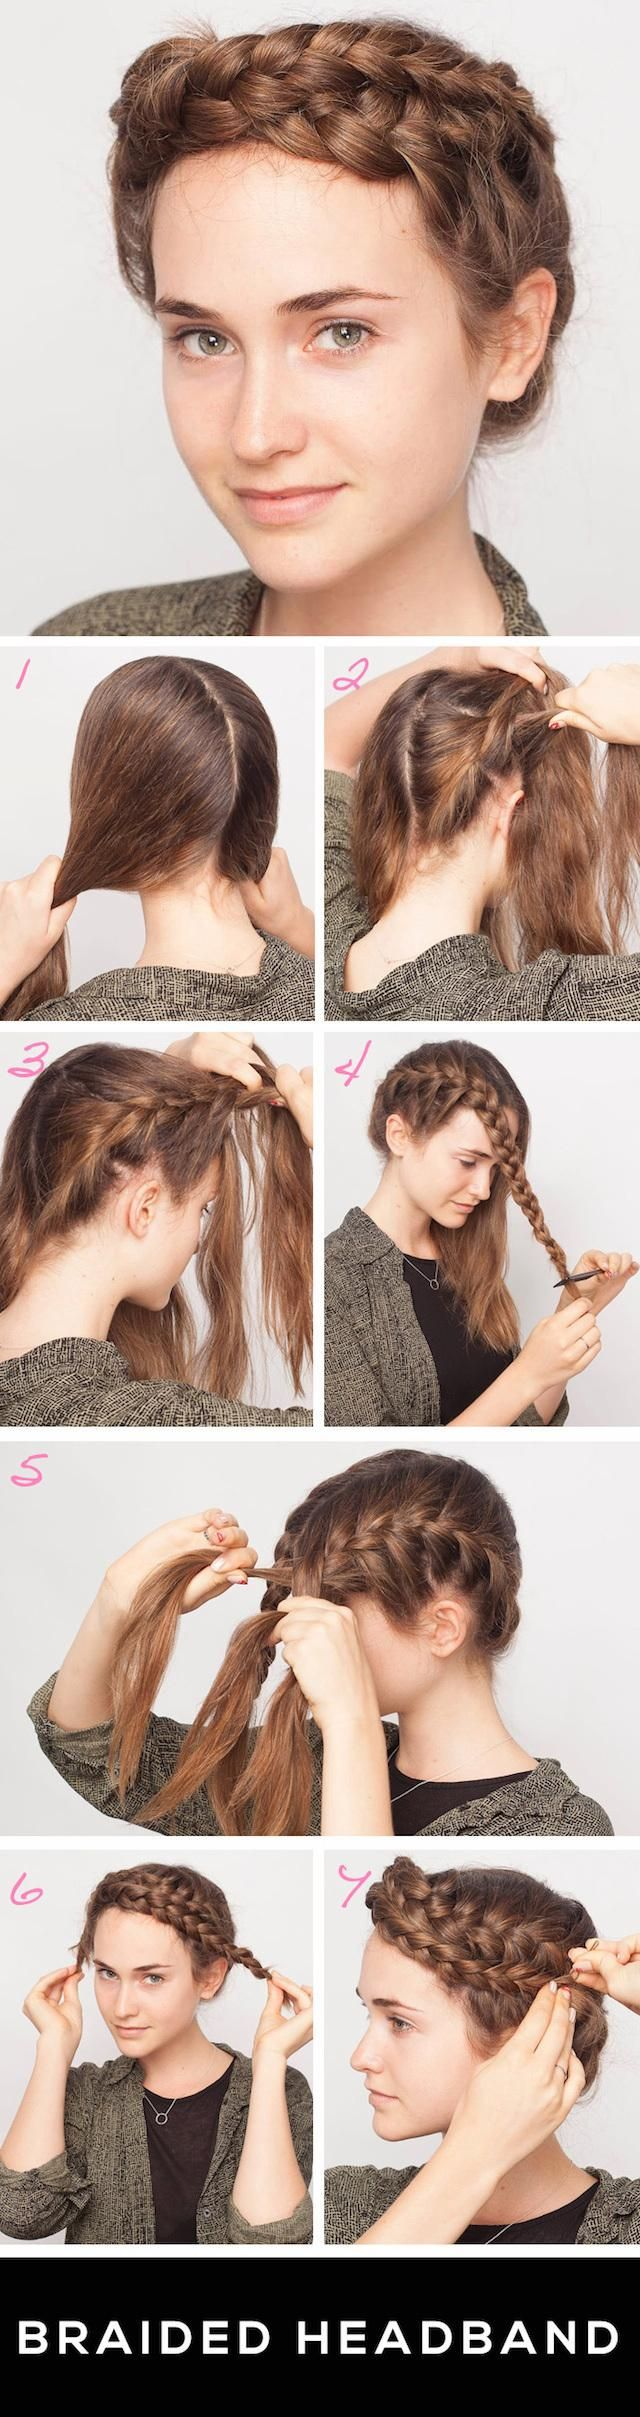 DIY Braid Hairstyle: Simple Braided headband tutorial